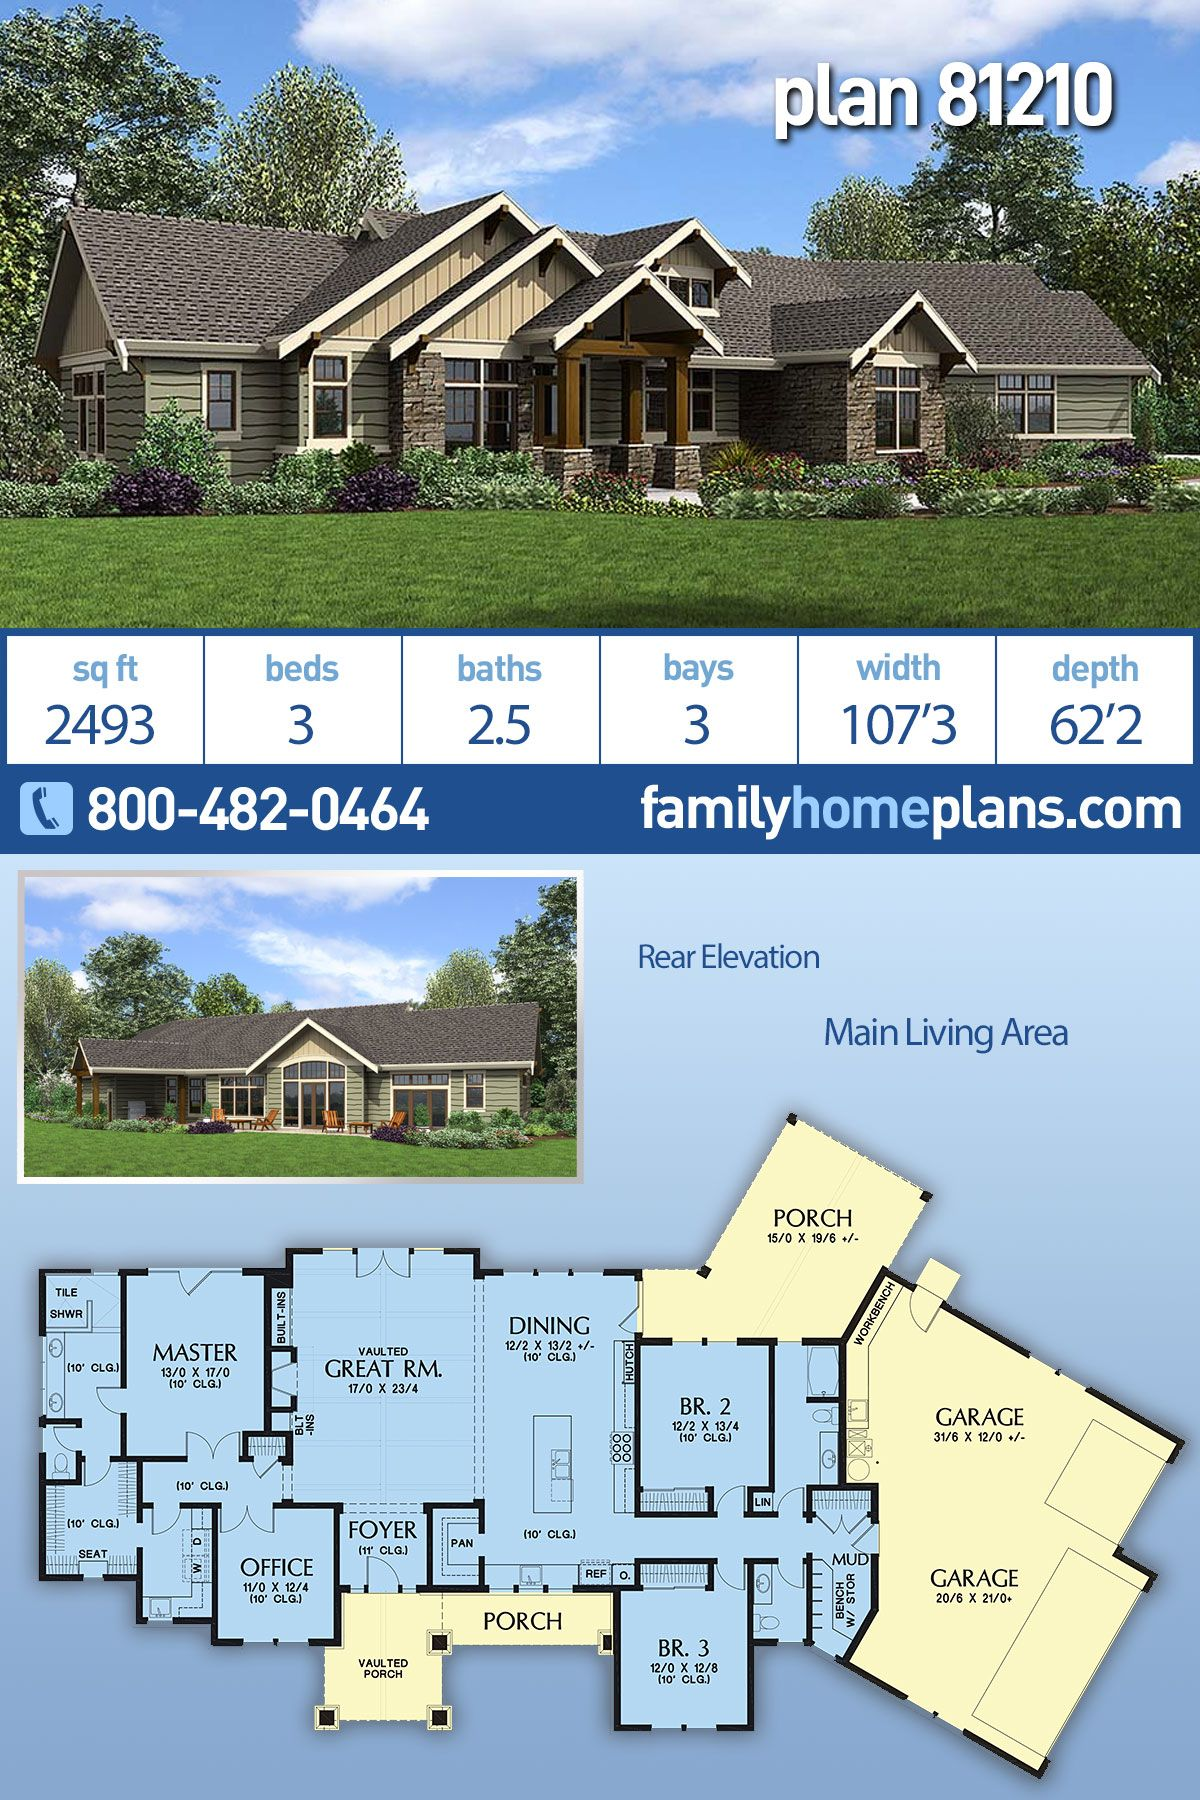 Ranch Style House Plan 81210 With 3 Bed 3 Bath 3 Car Garage Ranch Style Homes Ranch Style House Plans Craftsman House